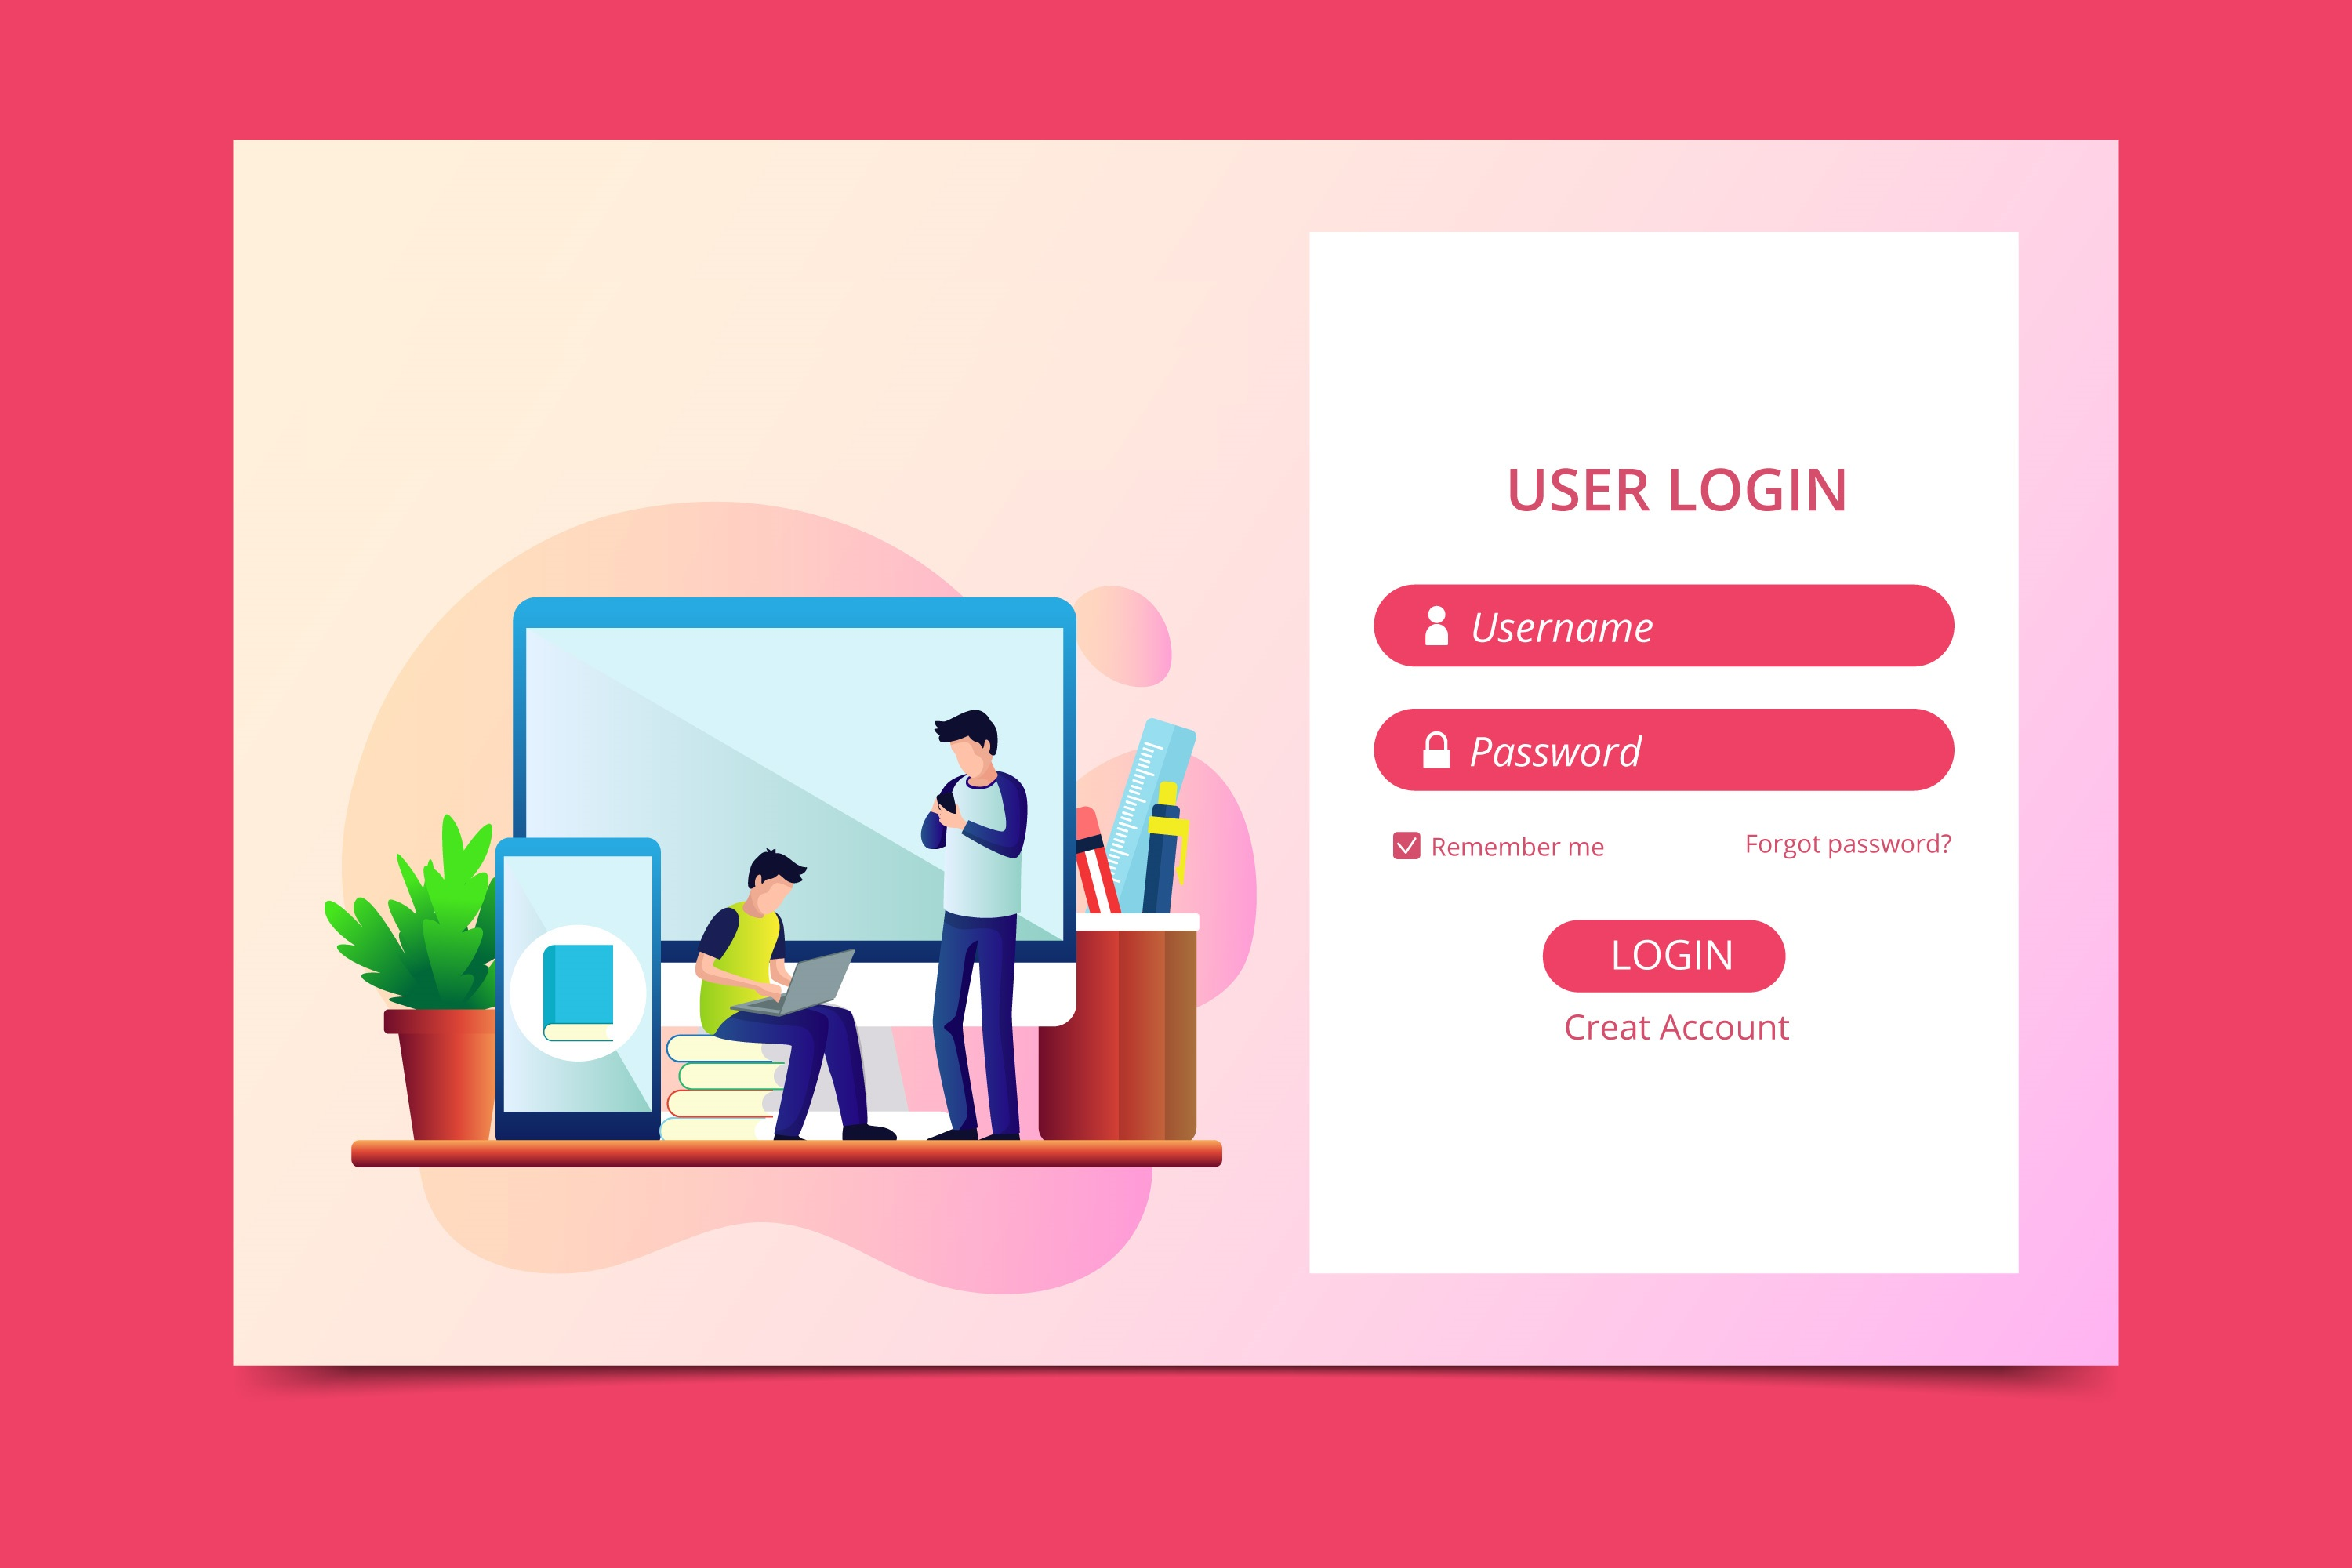 How to Open Account and Sign in to Exness